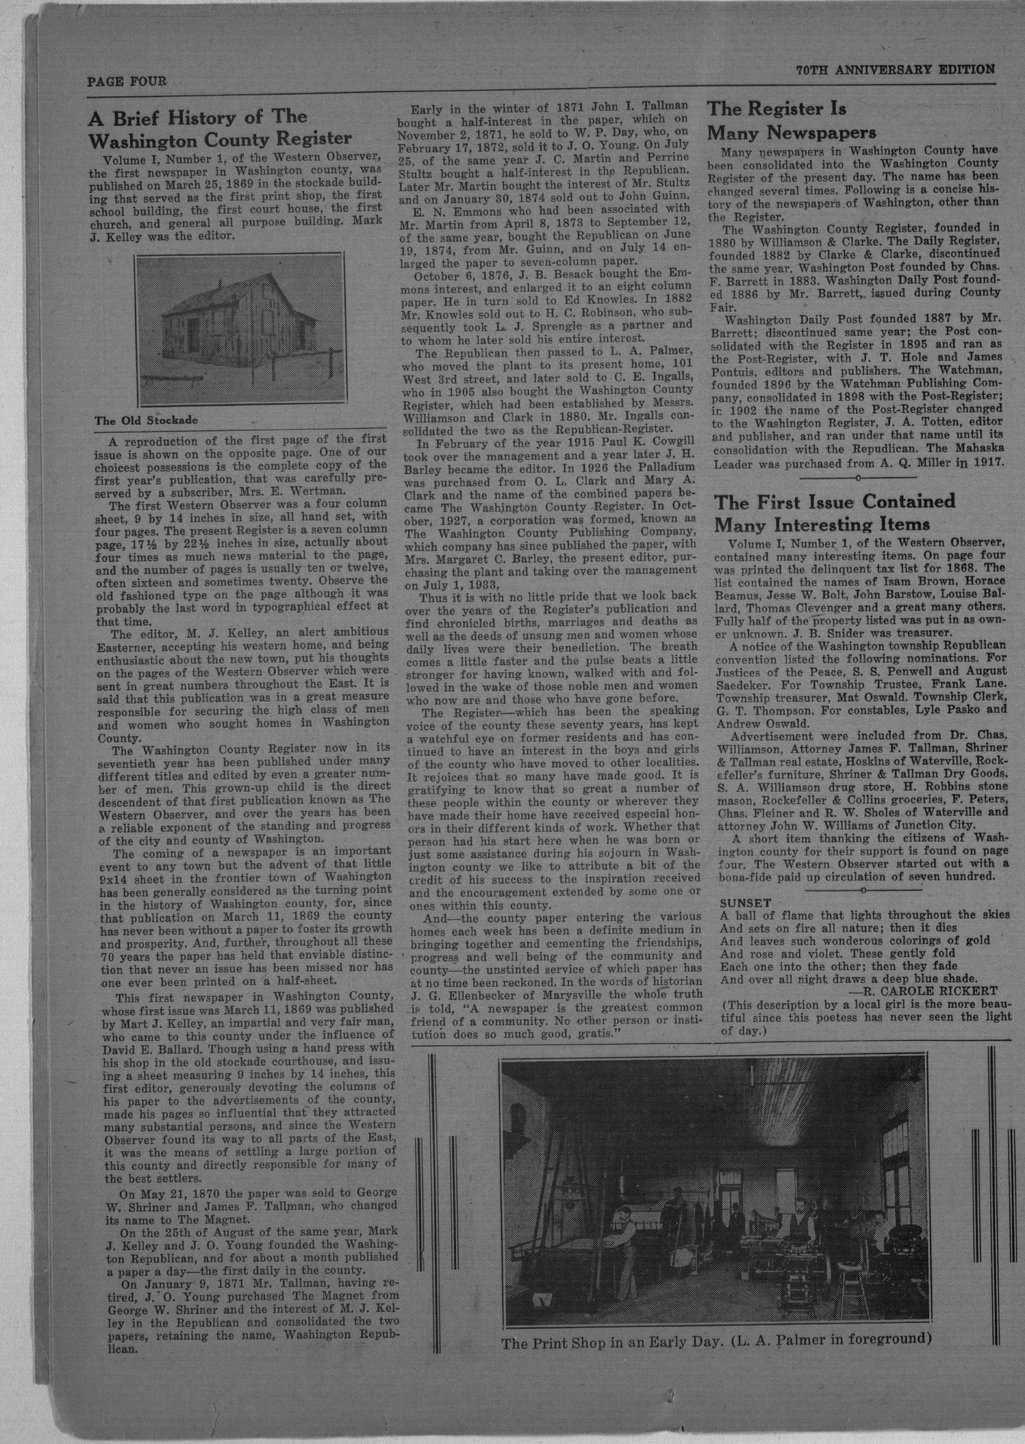 70th anniversary edition supplement to the Washington County Register - 4